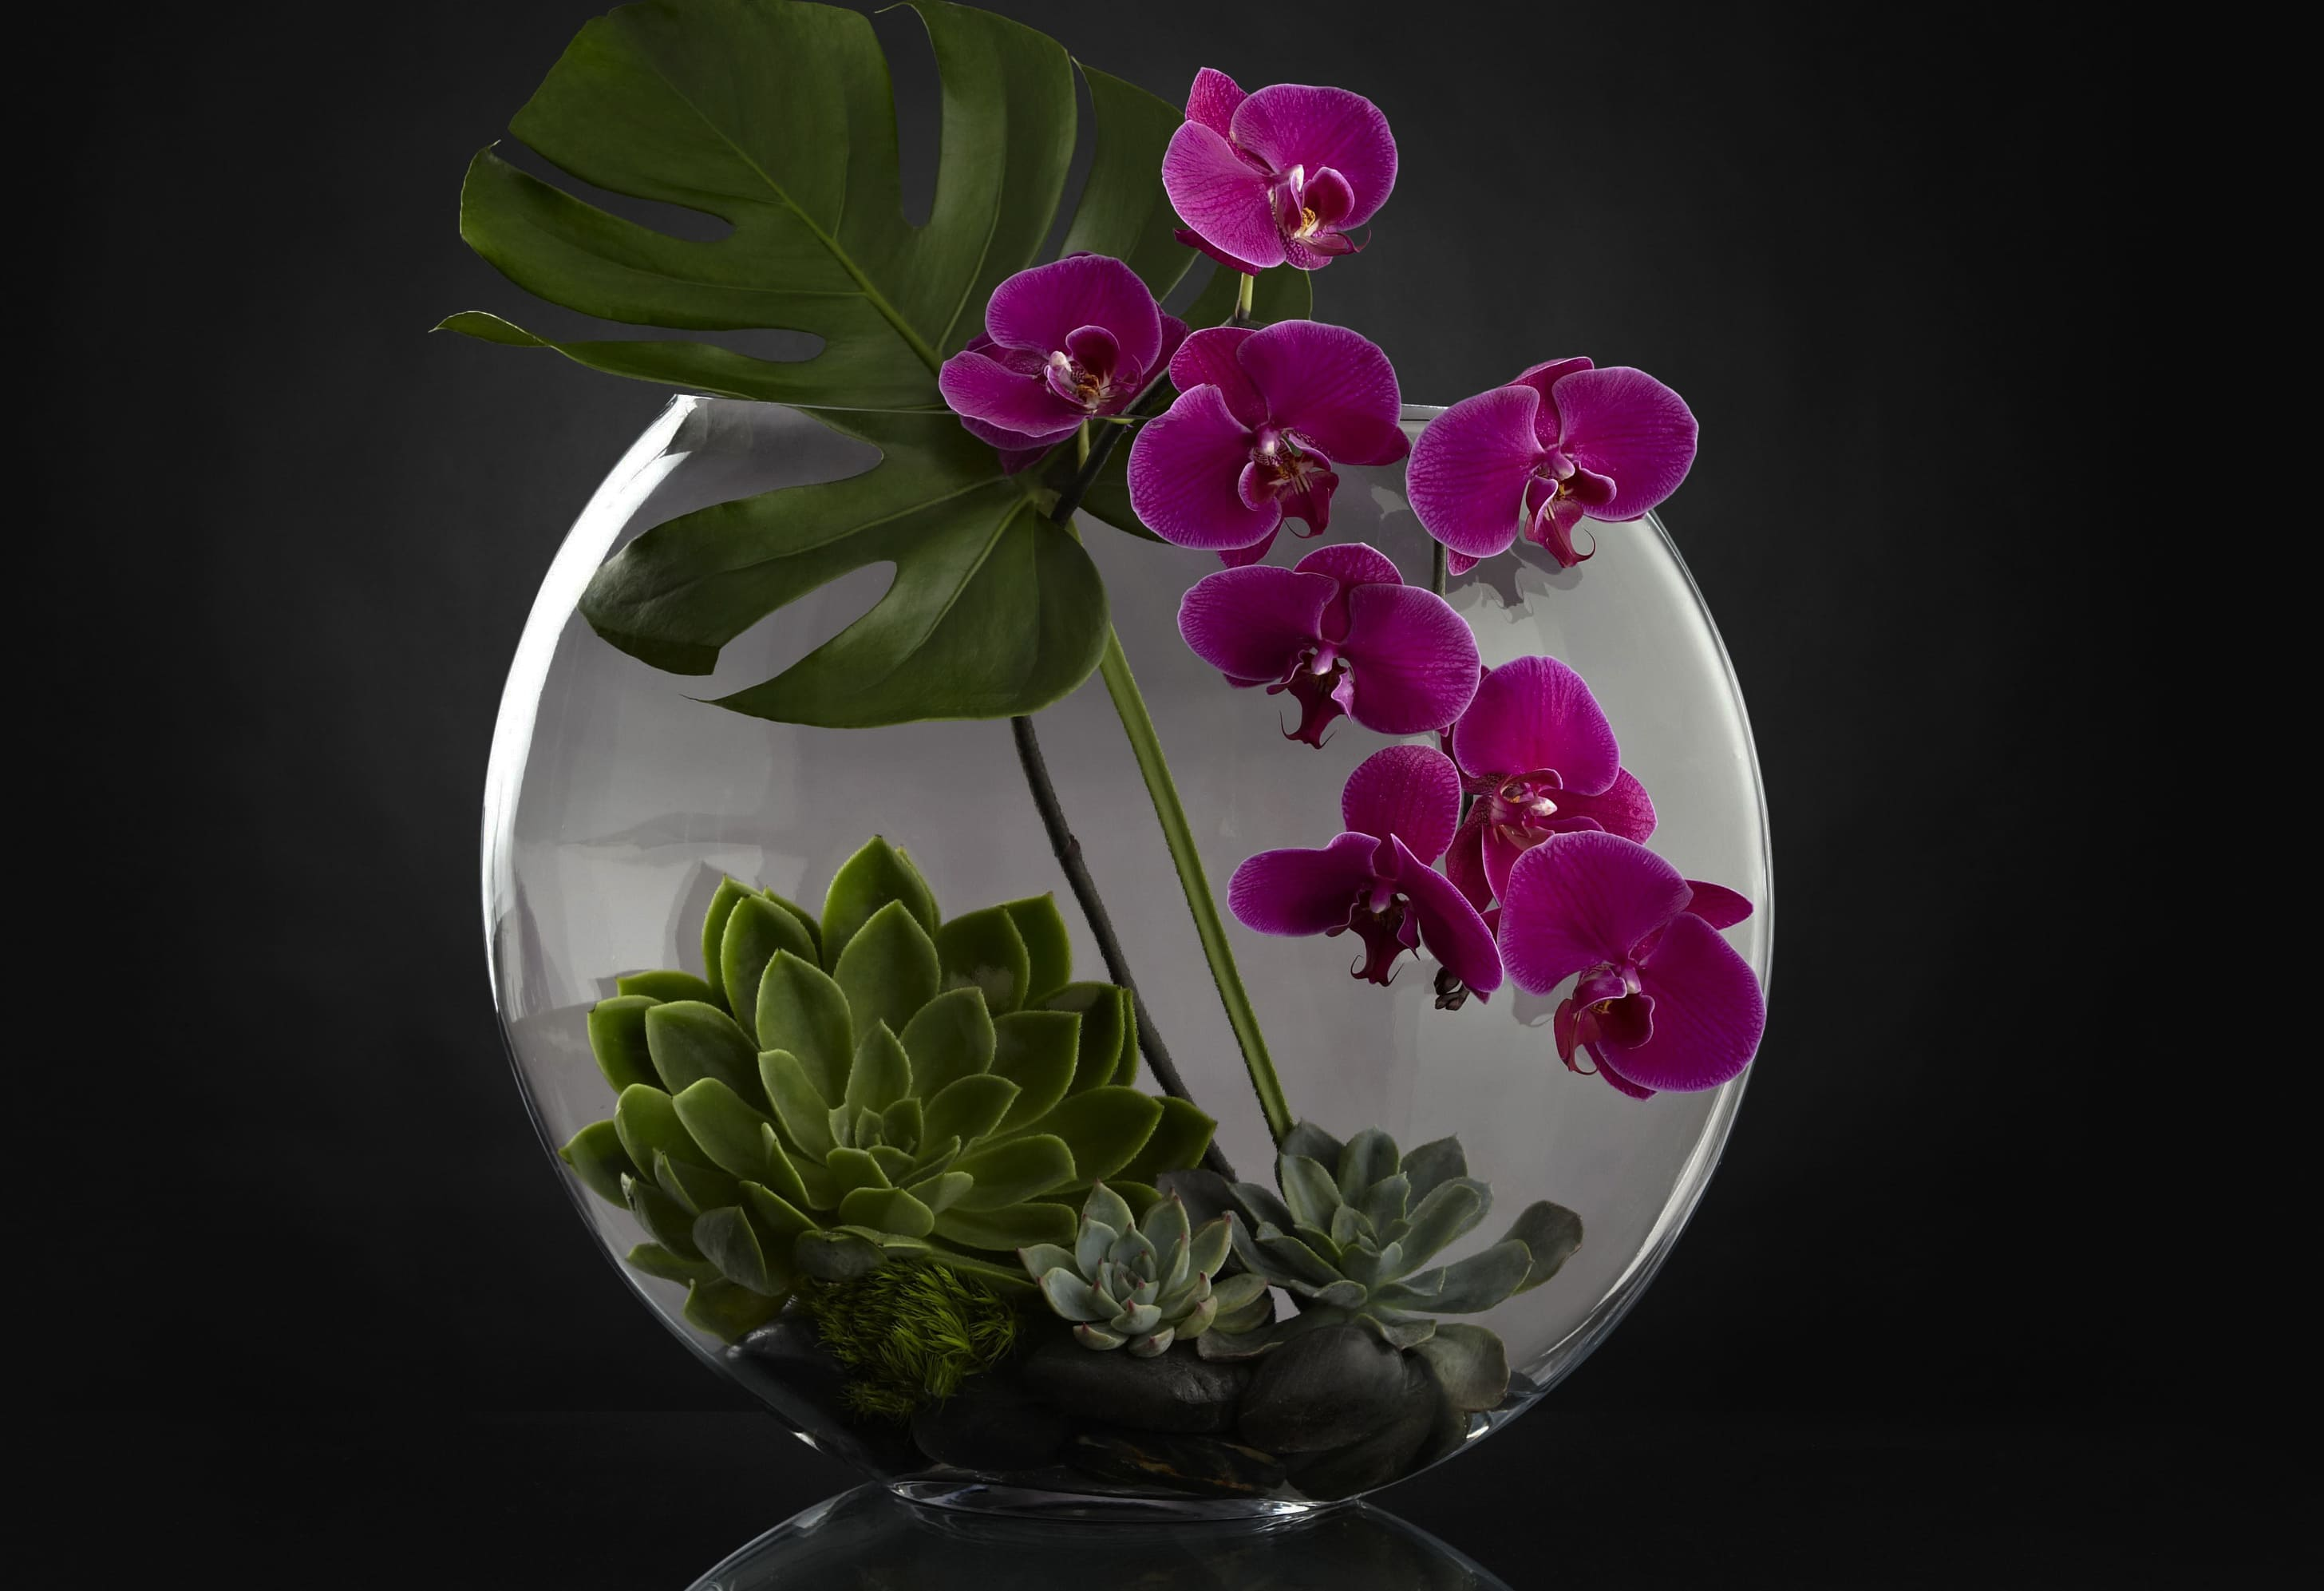 orchid-88